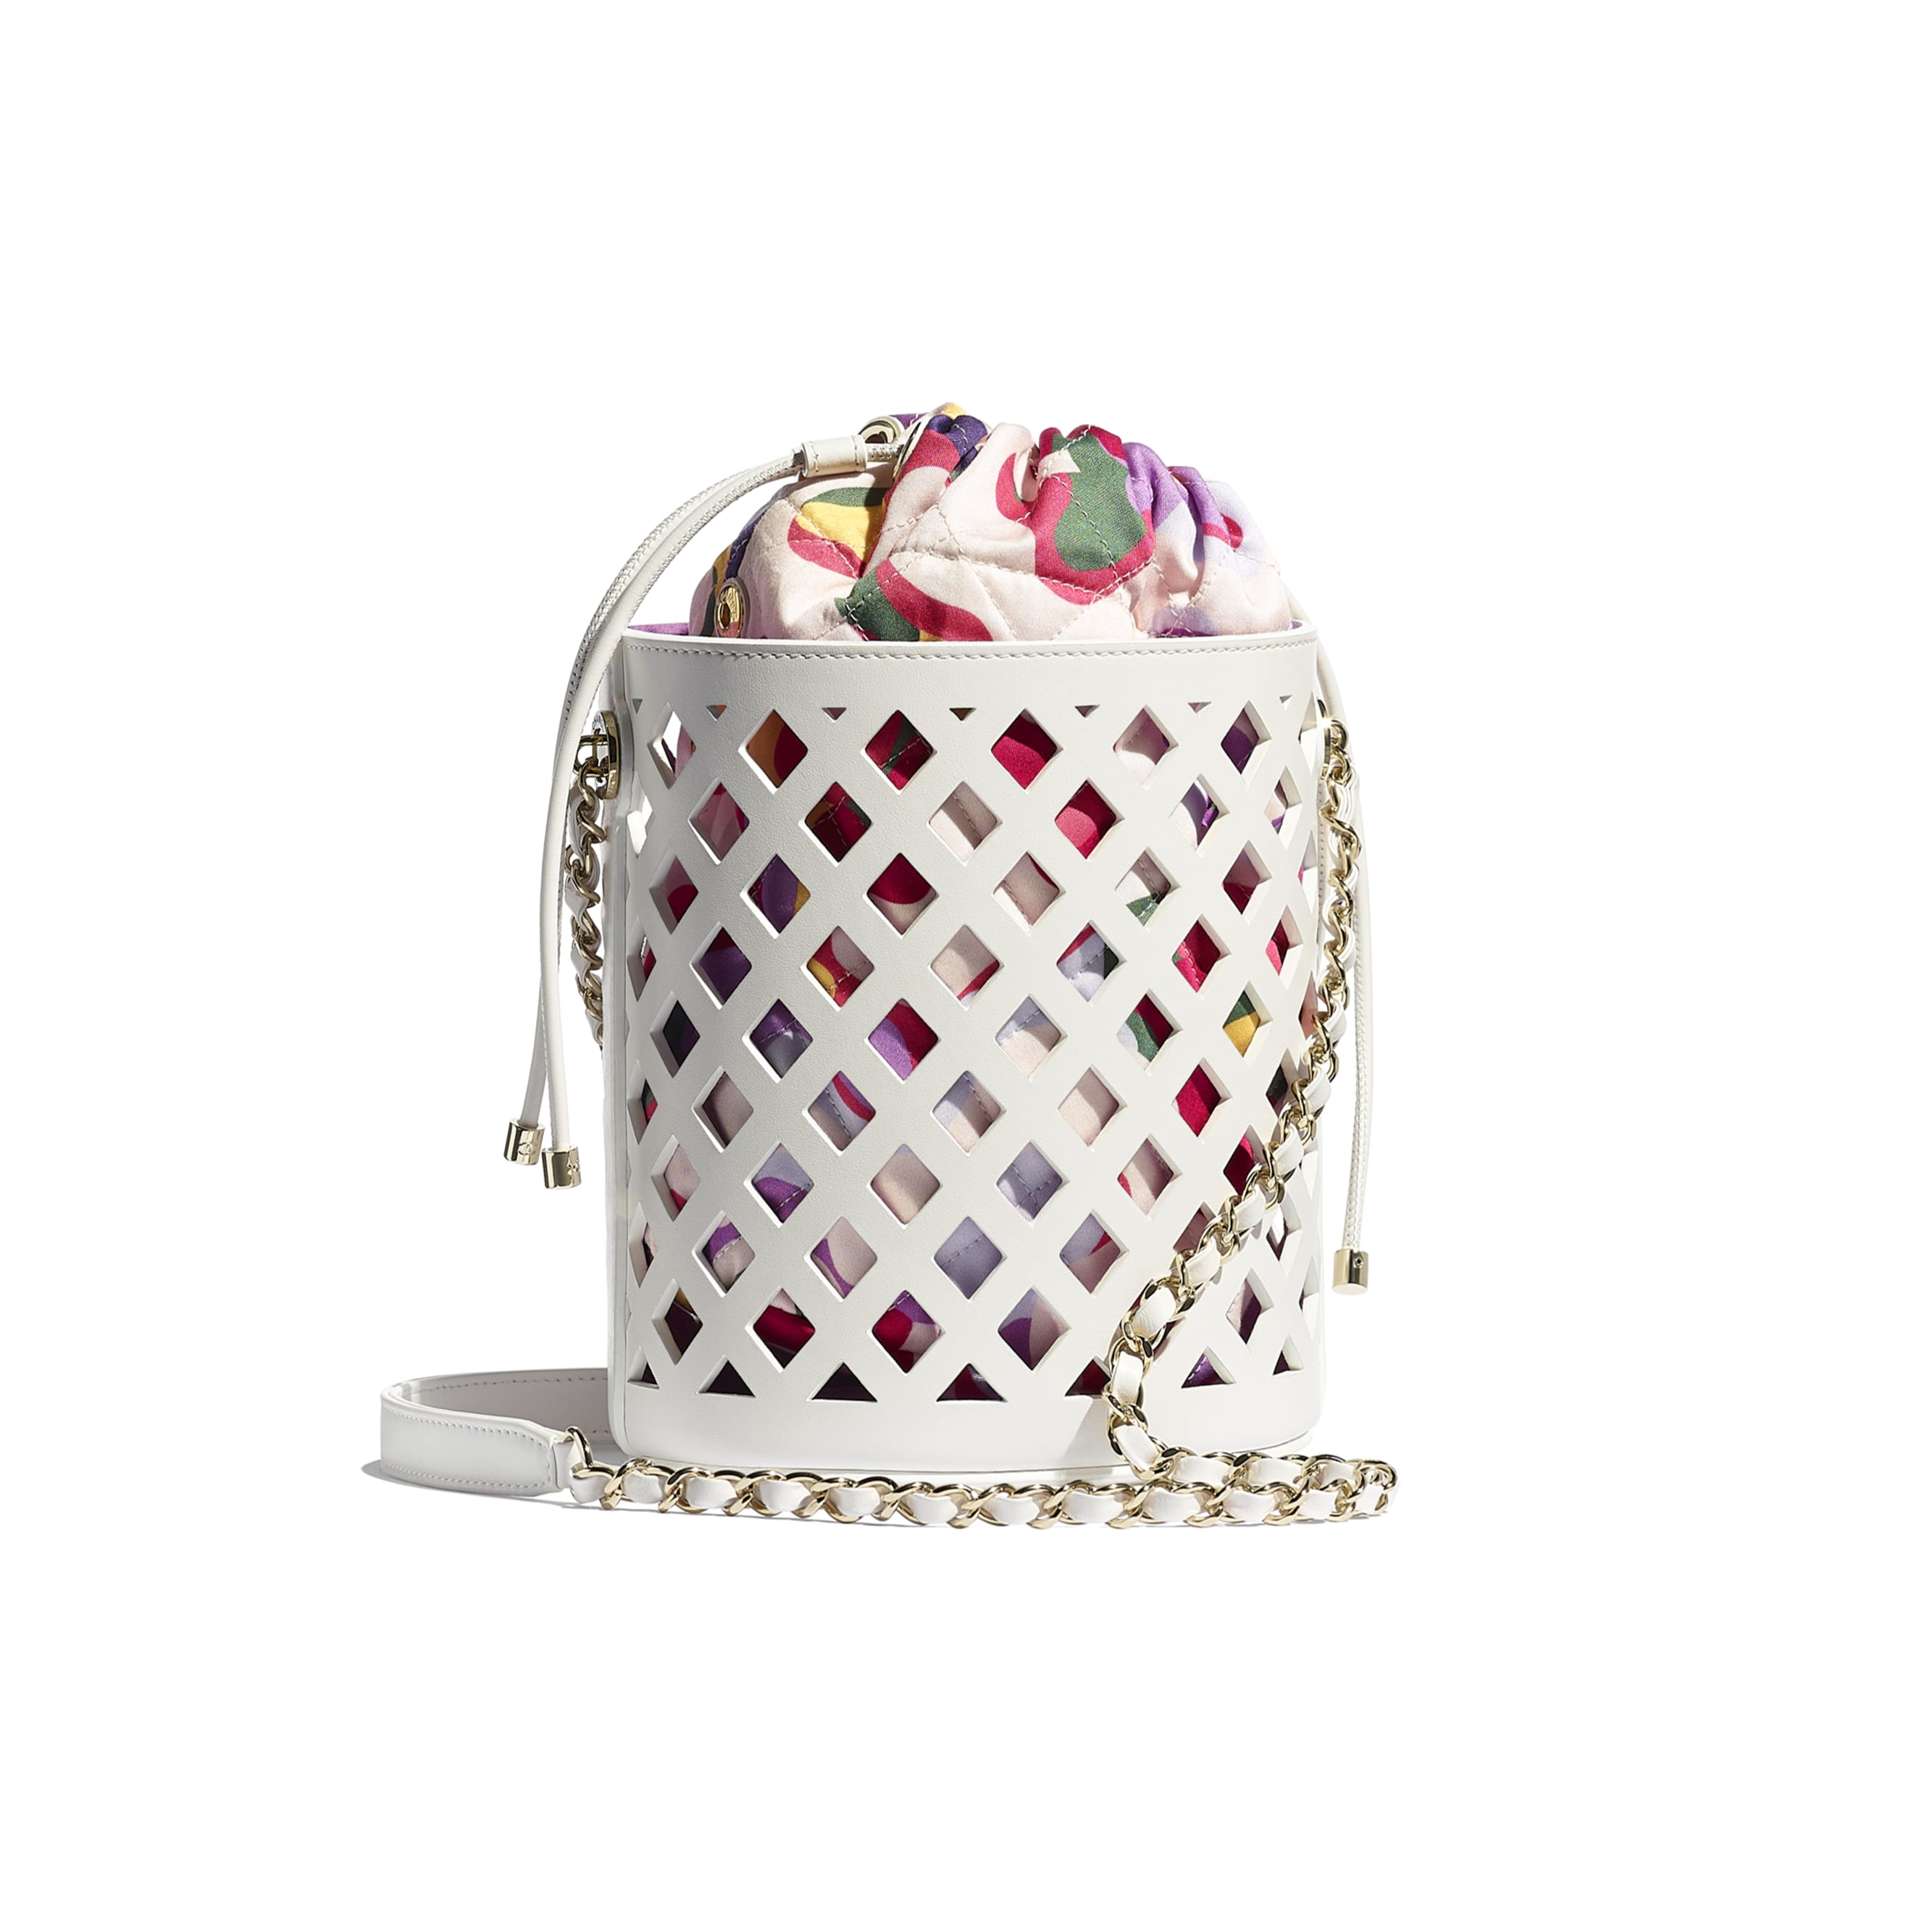 Drawstring Bag - White - Perforated Calfskin, Printed Fabric & Gold-Tone Metal - CHANEL - Alternative view - see standard sized version